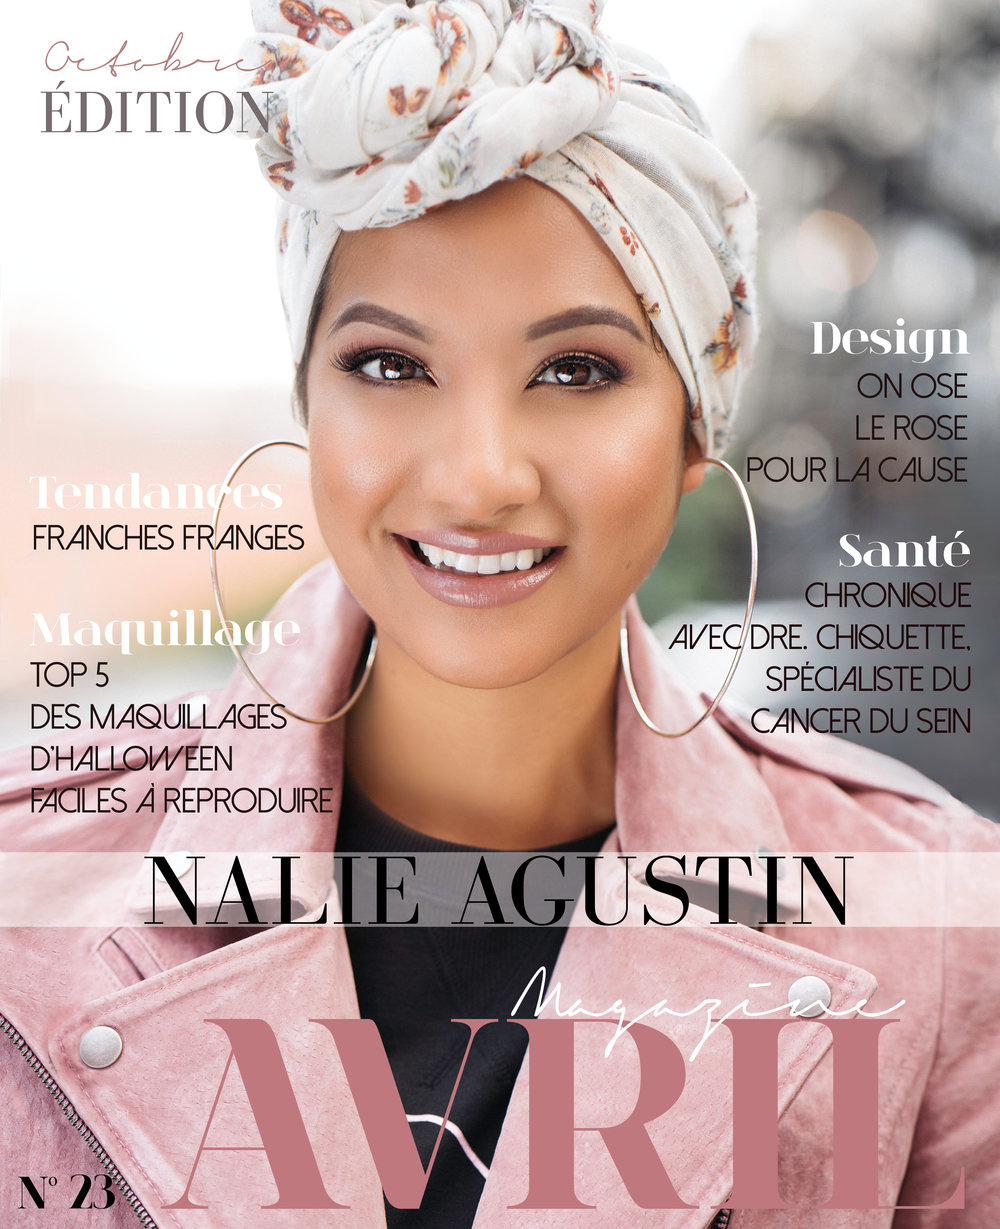 Cover-nalie-octobre.jpg